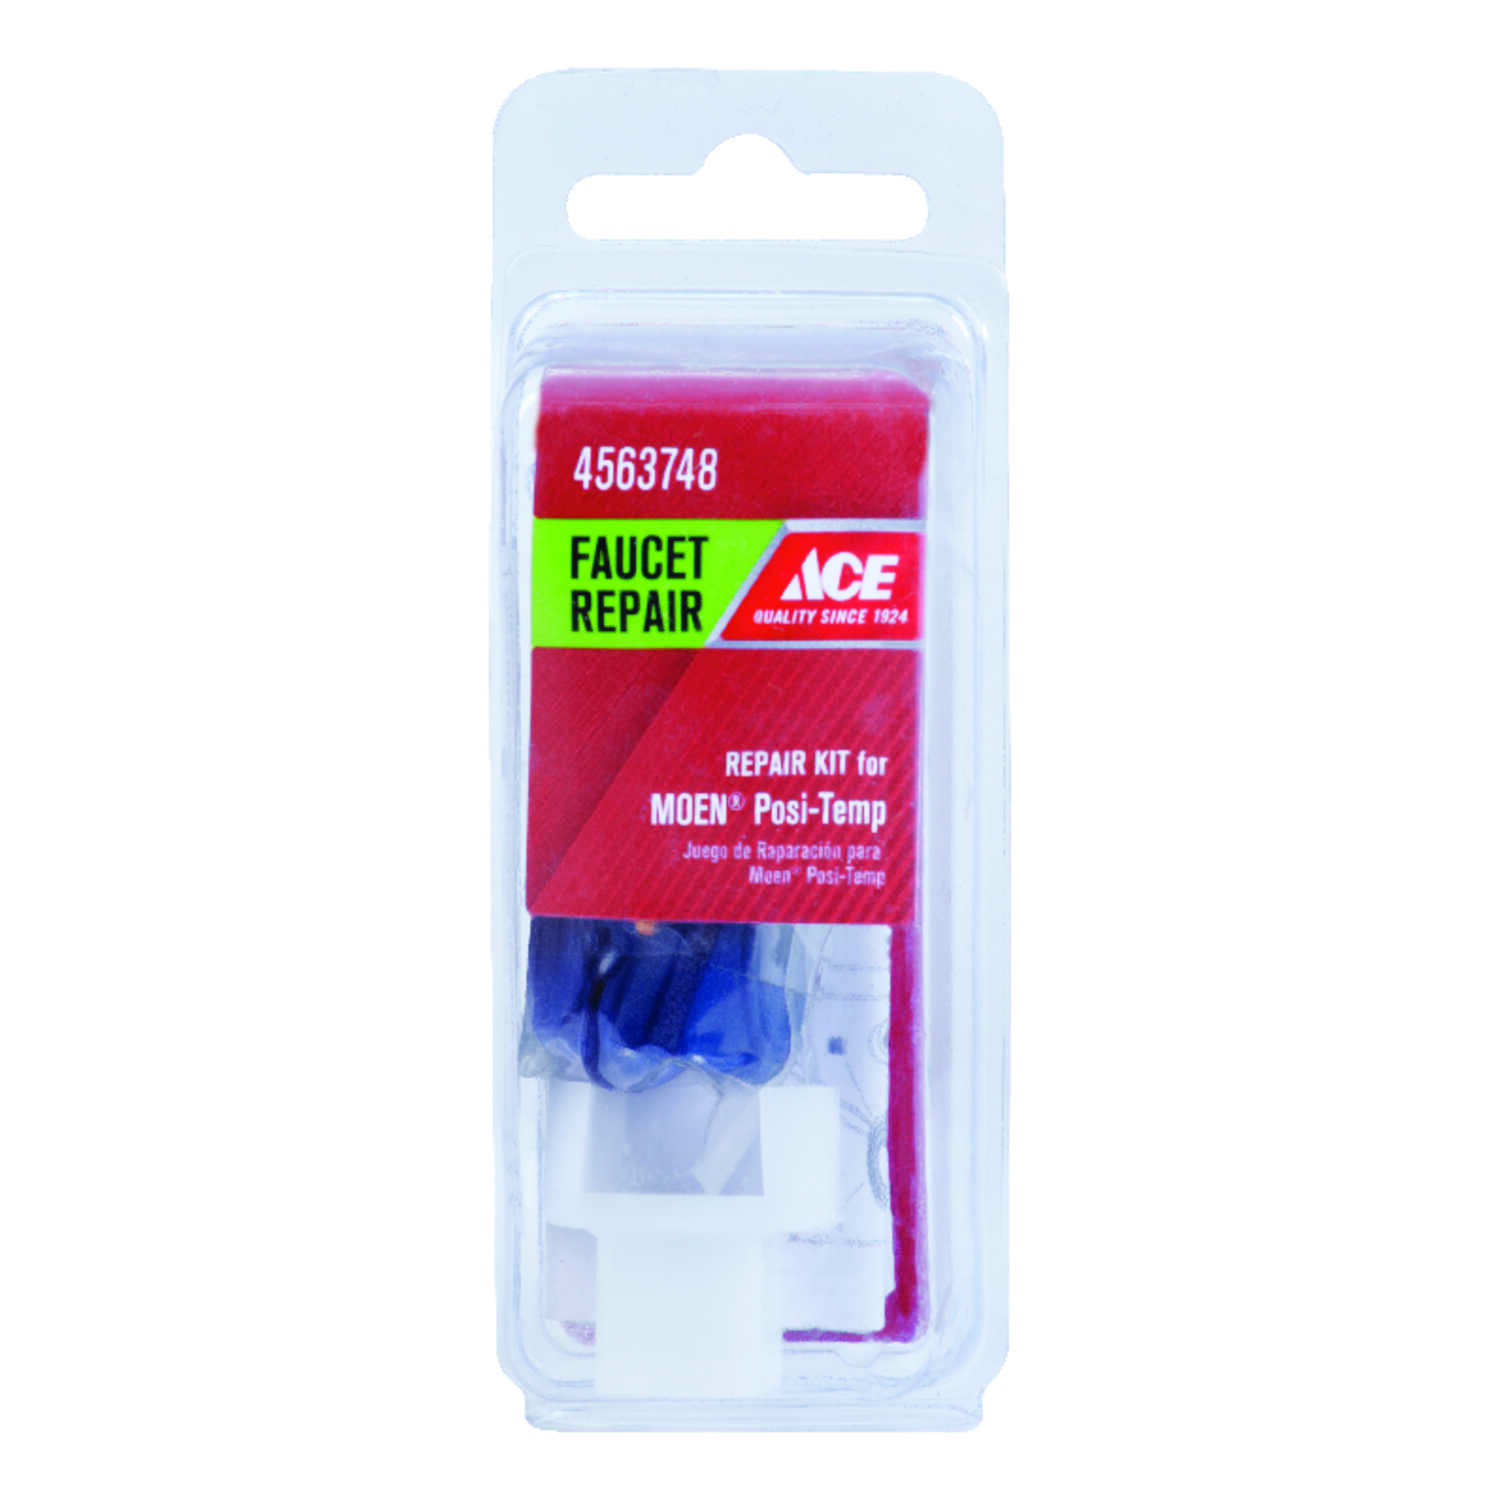 Ace  Faucet Repair Kit  Tub and Shower